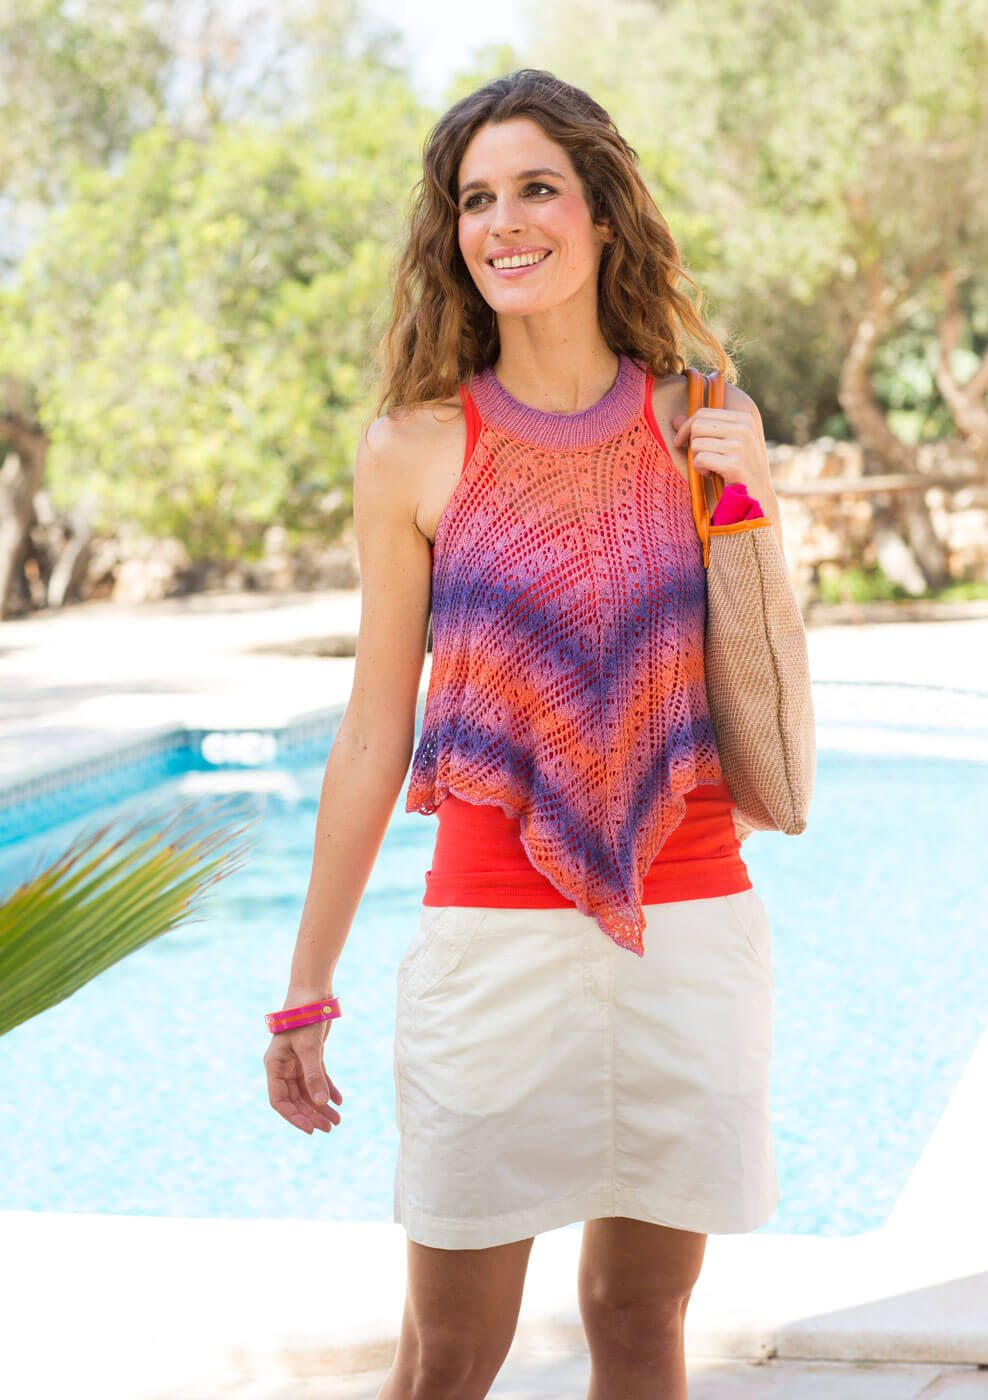 Strick-Top im Diagonalmuster | Pinterest | Strickanleitungen, Strick ...